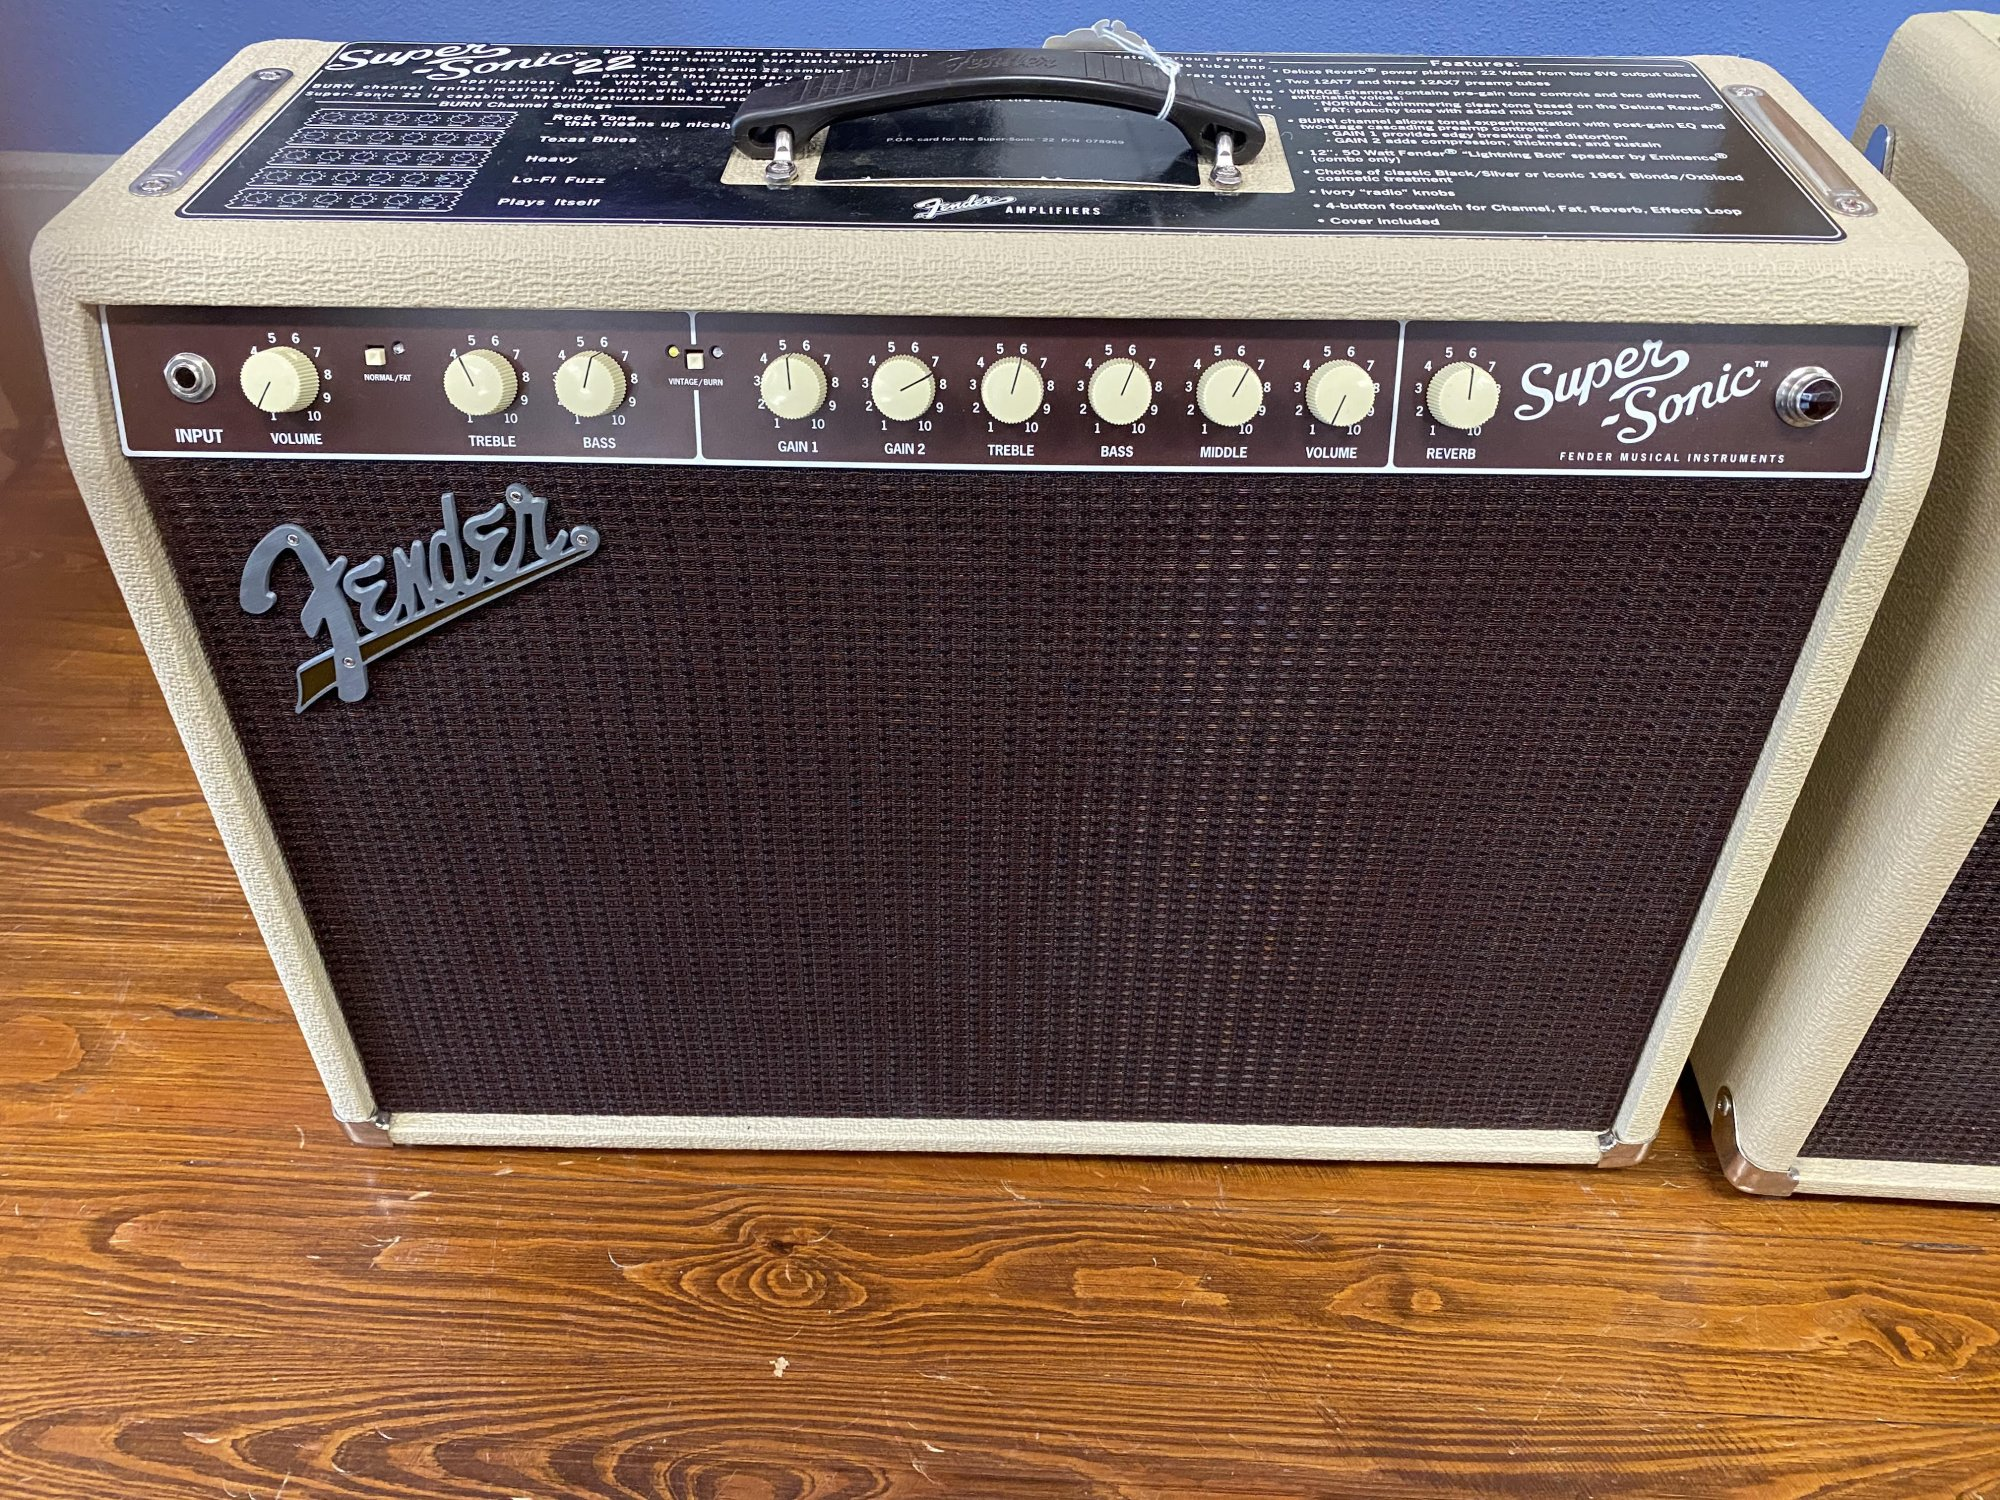 Used Fender Supersonic 22 combo blonde